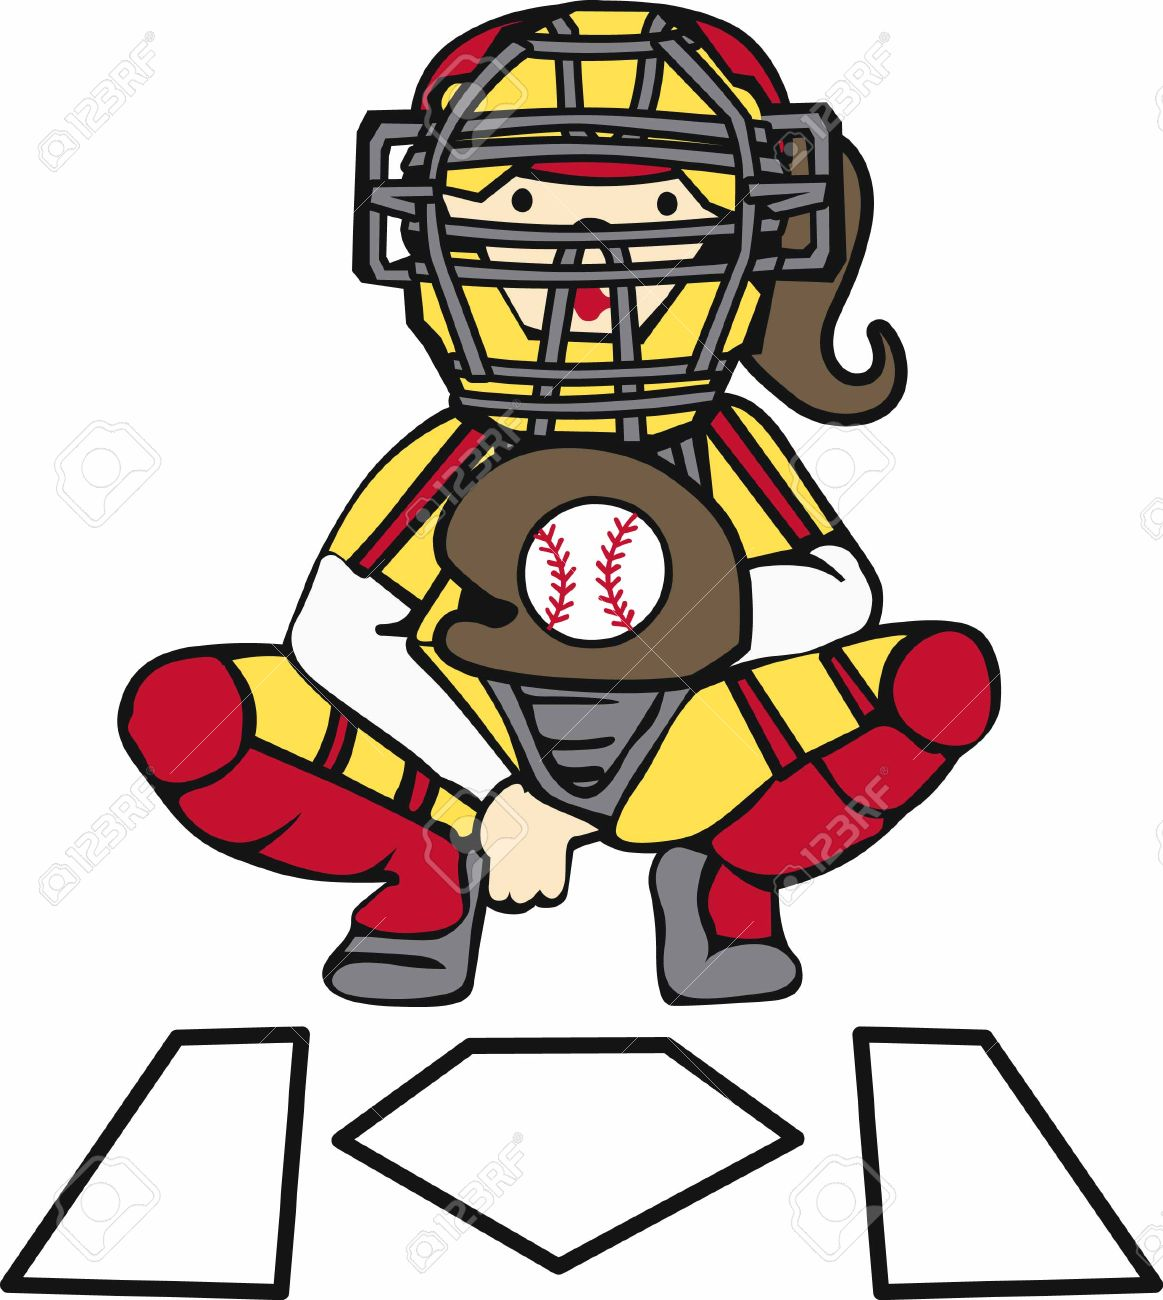 210 Girls Softball Stock Illustrations, Cliparts And Royalty Free.